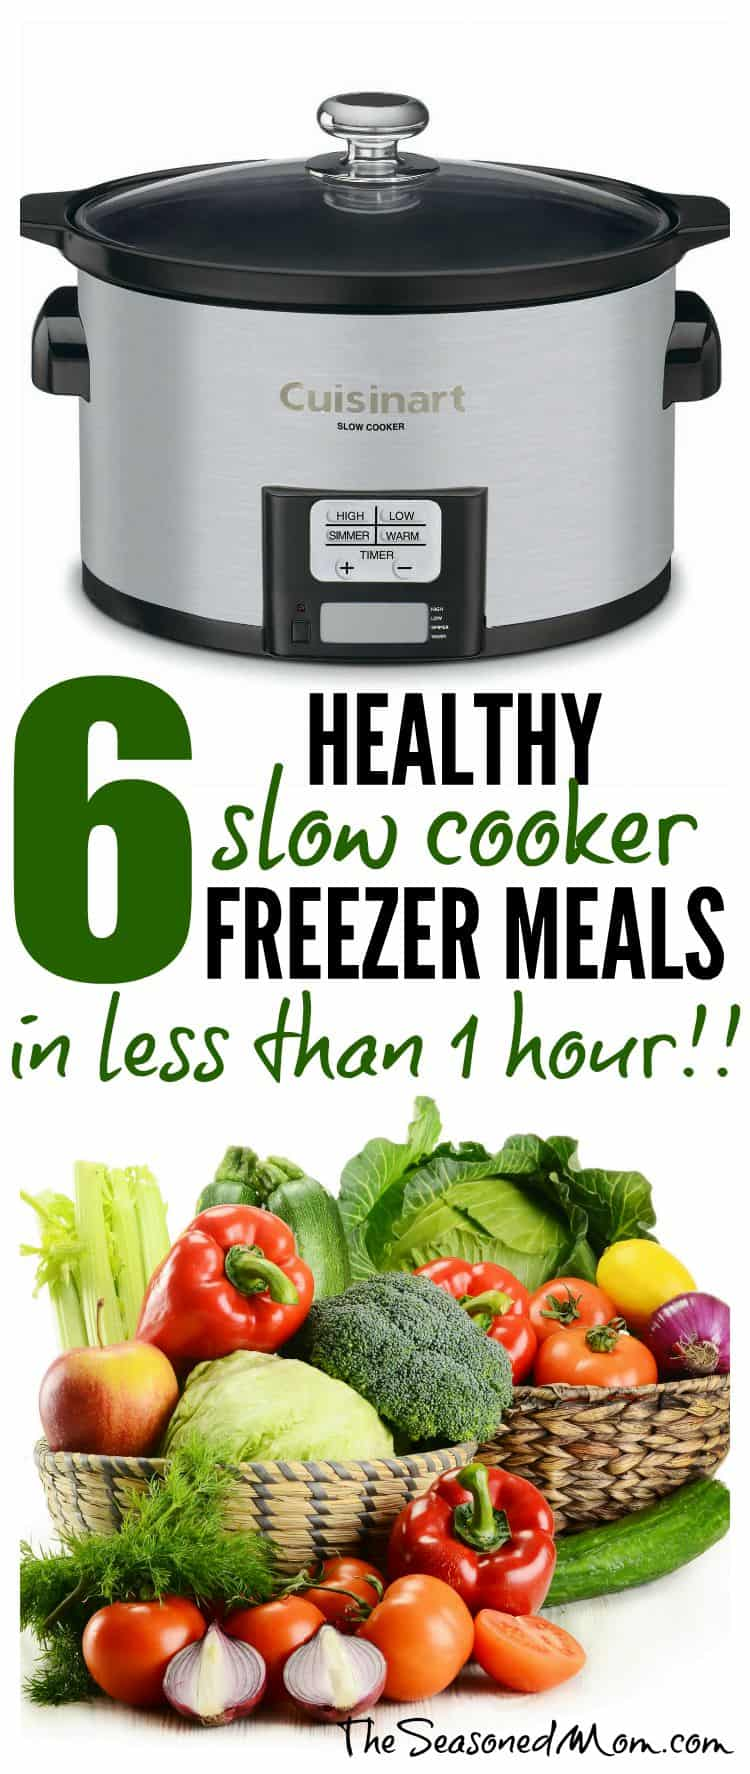 9 Healthy Crockpot Chicken Dinners. 12 Super Easy Healthy Crock Pot Chili Recipes. Tailgate Worthy Slow Cooker Recipes. Set It and Forget It Slow Cooker Meals for the Holidays. 10 Sweet Slow Cooker Baked Treats. Featured Products. Bed Bath & .